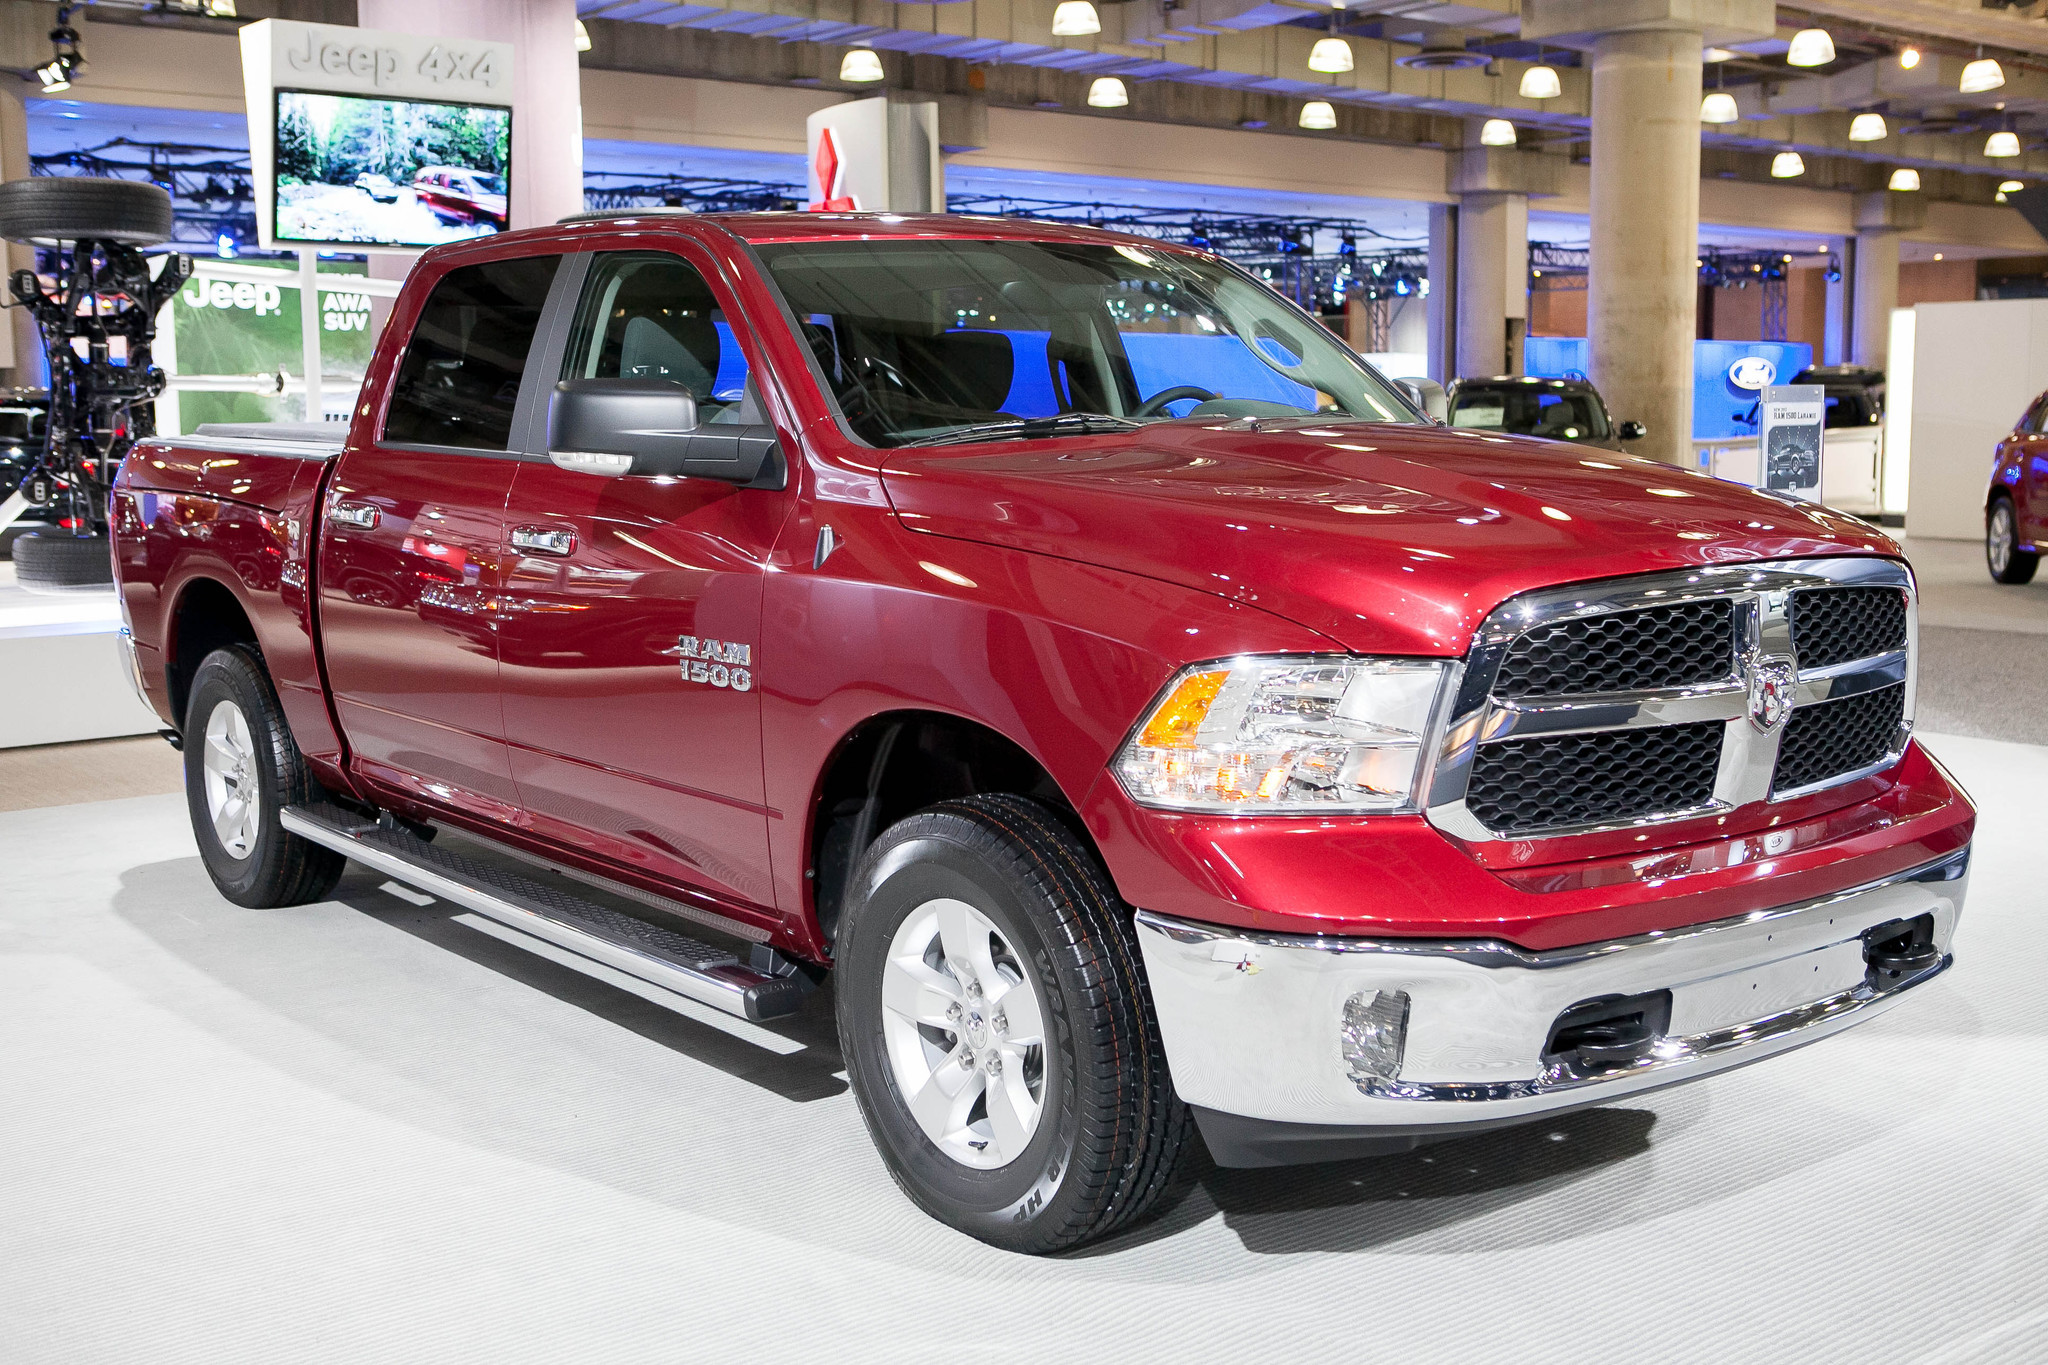 2013 ram 1500 slt 4x4 pickup top notch fuel economy advanced features baltimore sun. Black Bedroom Furniture Sets. Home Design Ideas